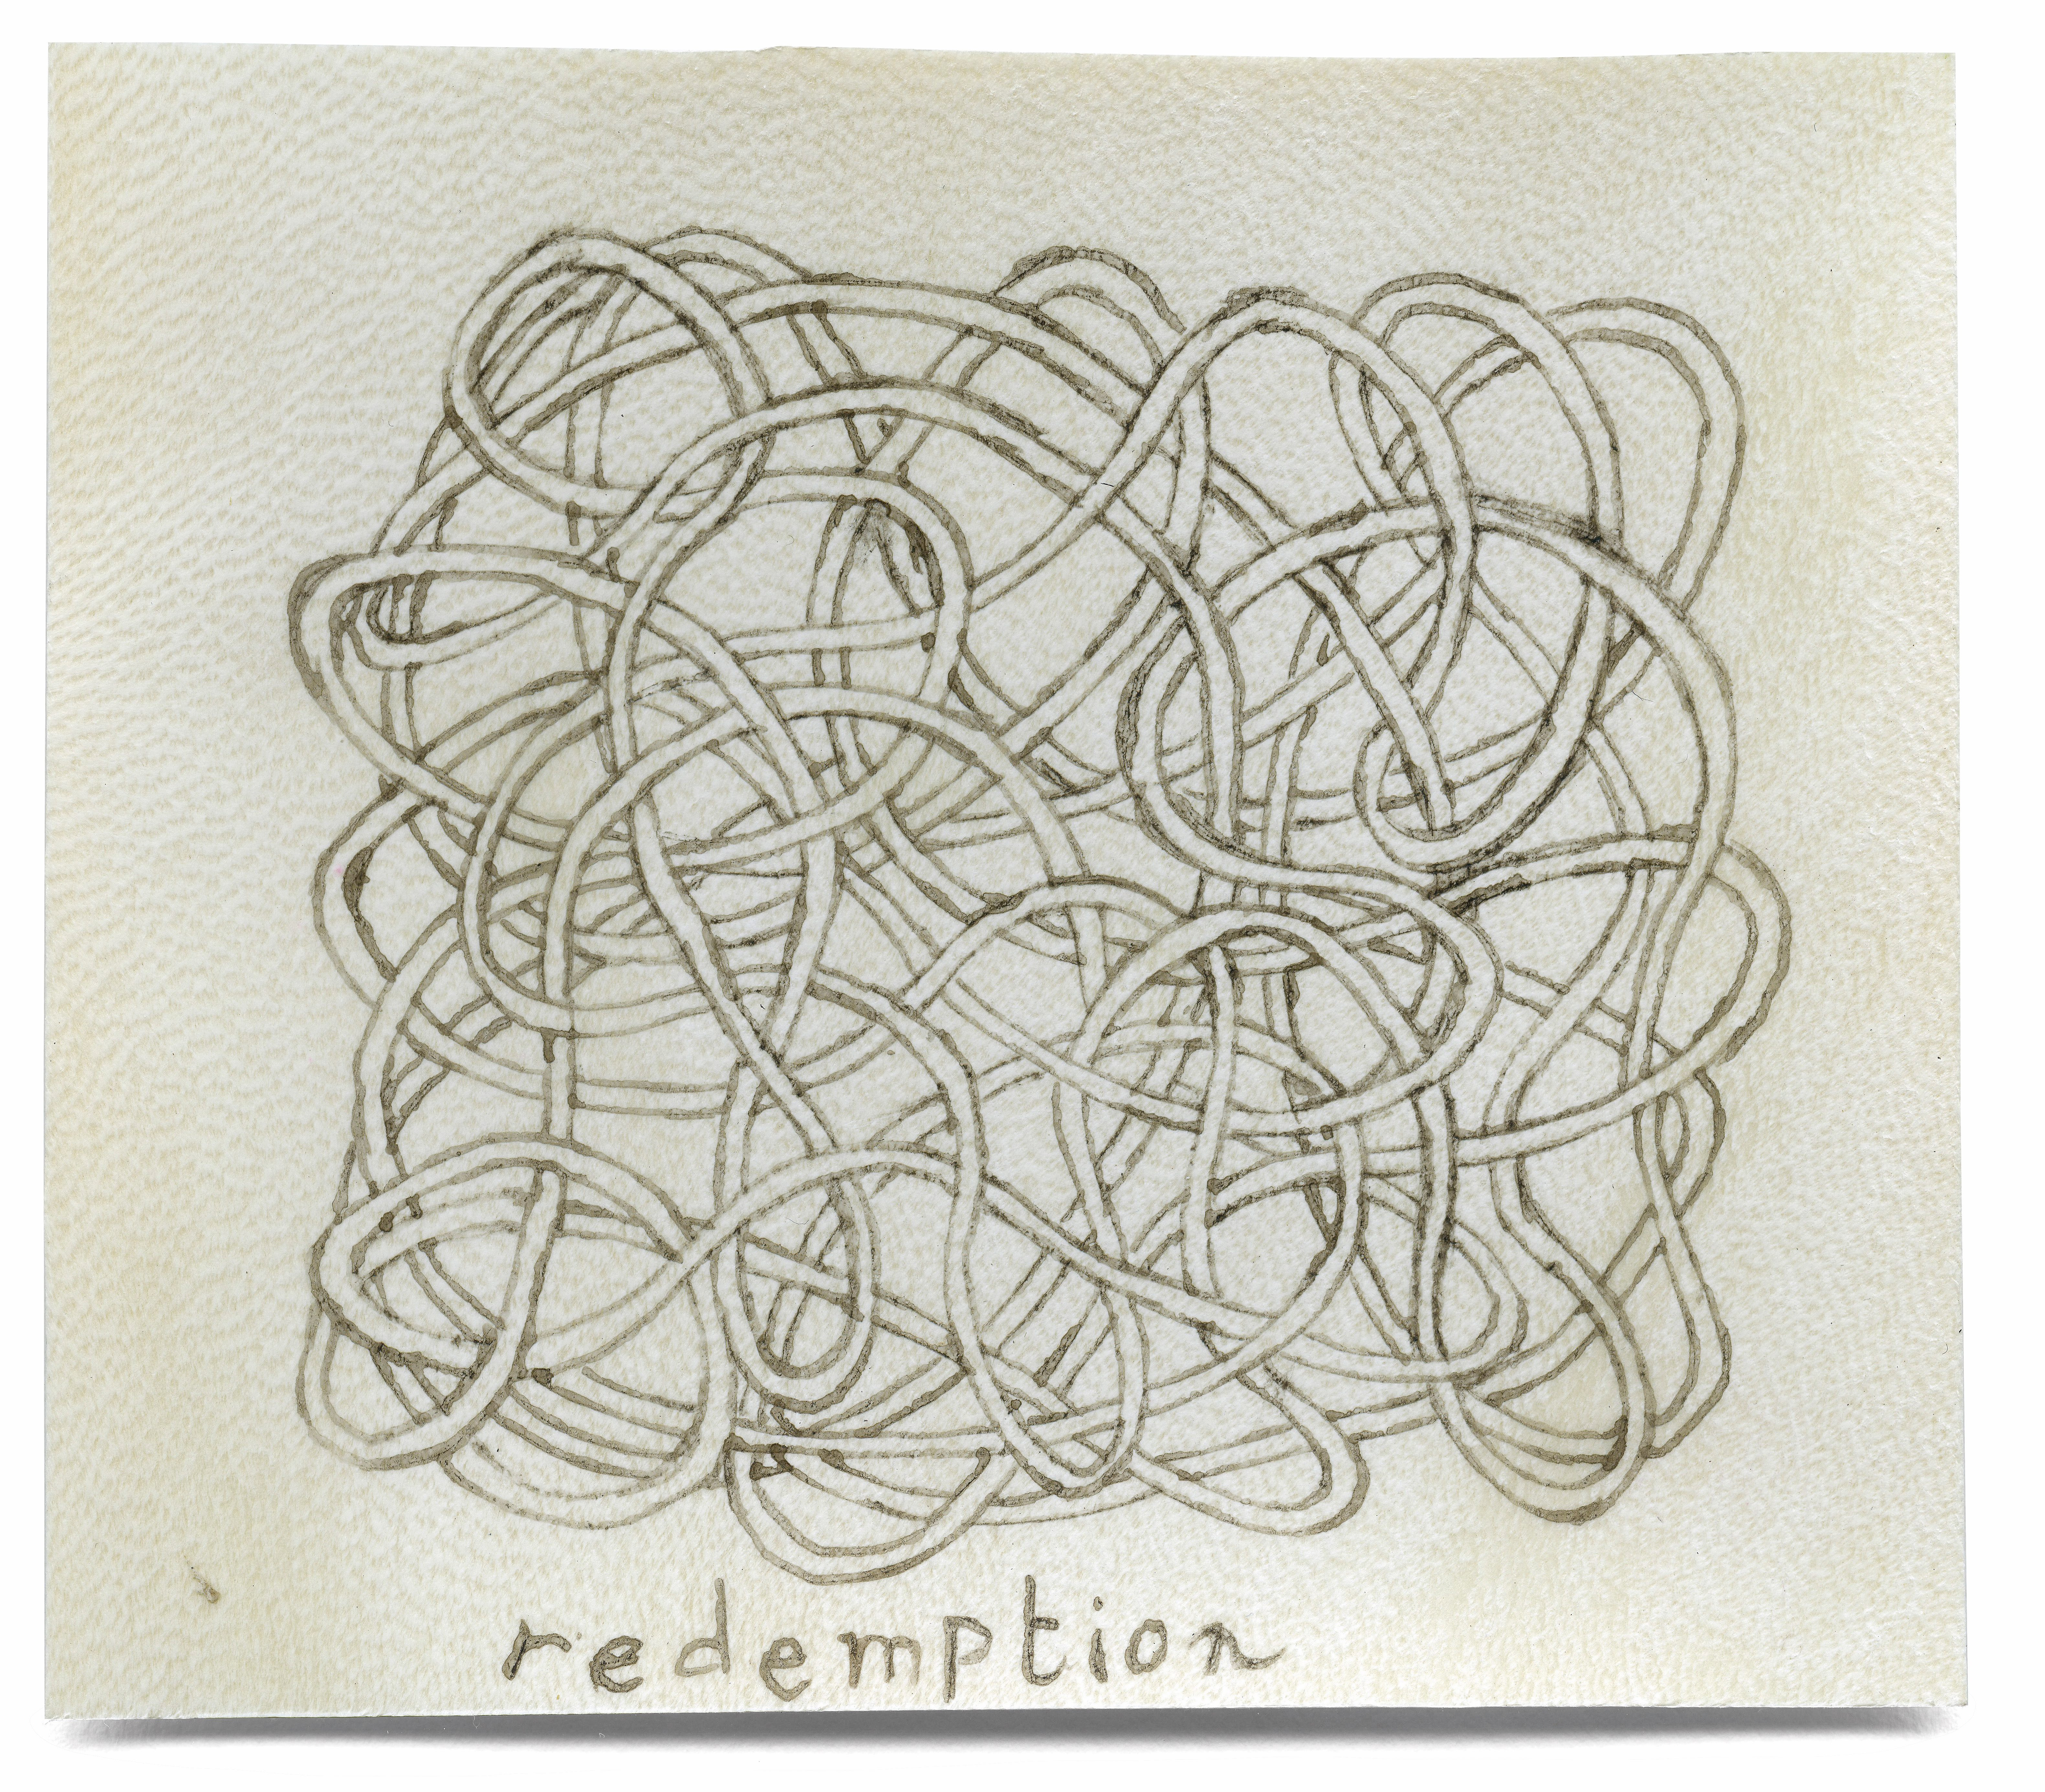 redemption, 10 x 20 cm, iron gall ink on sheep parchment